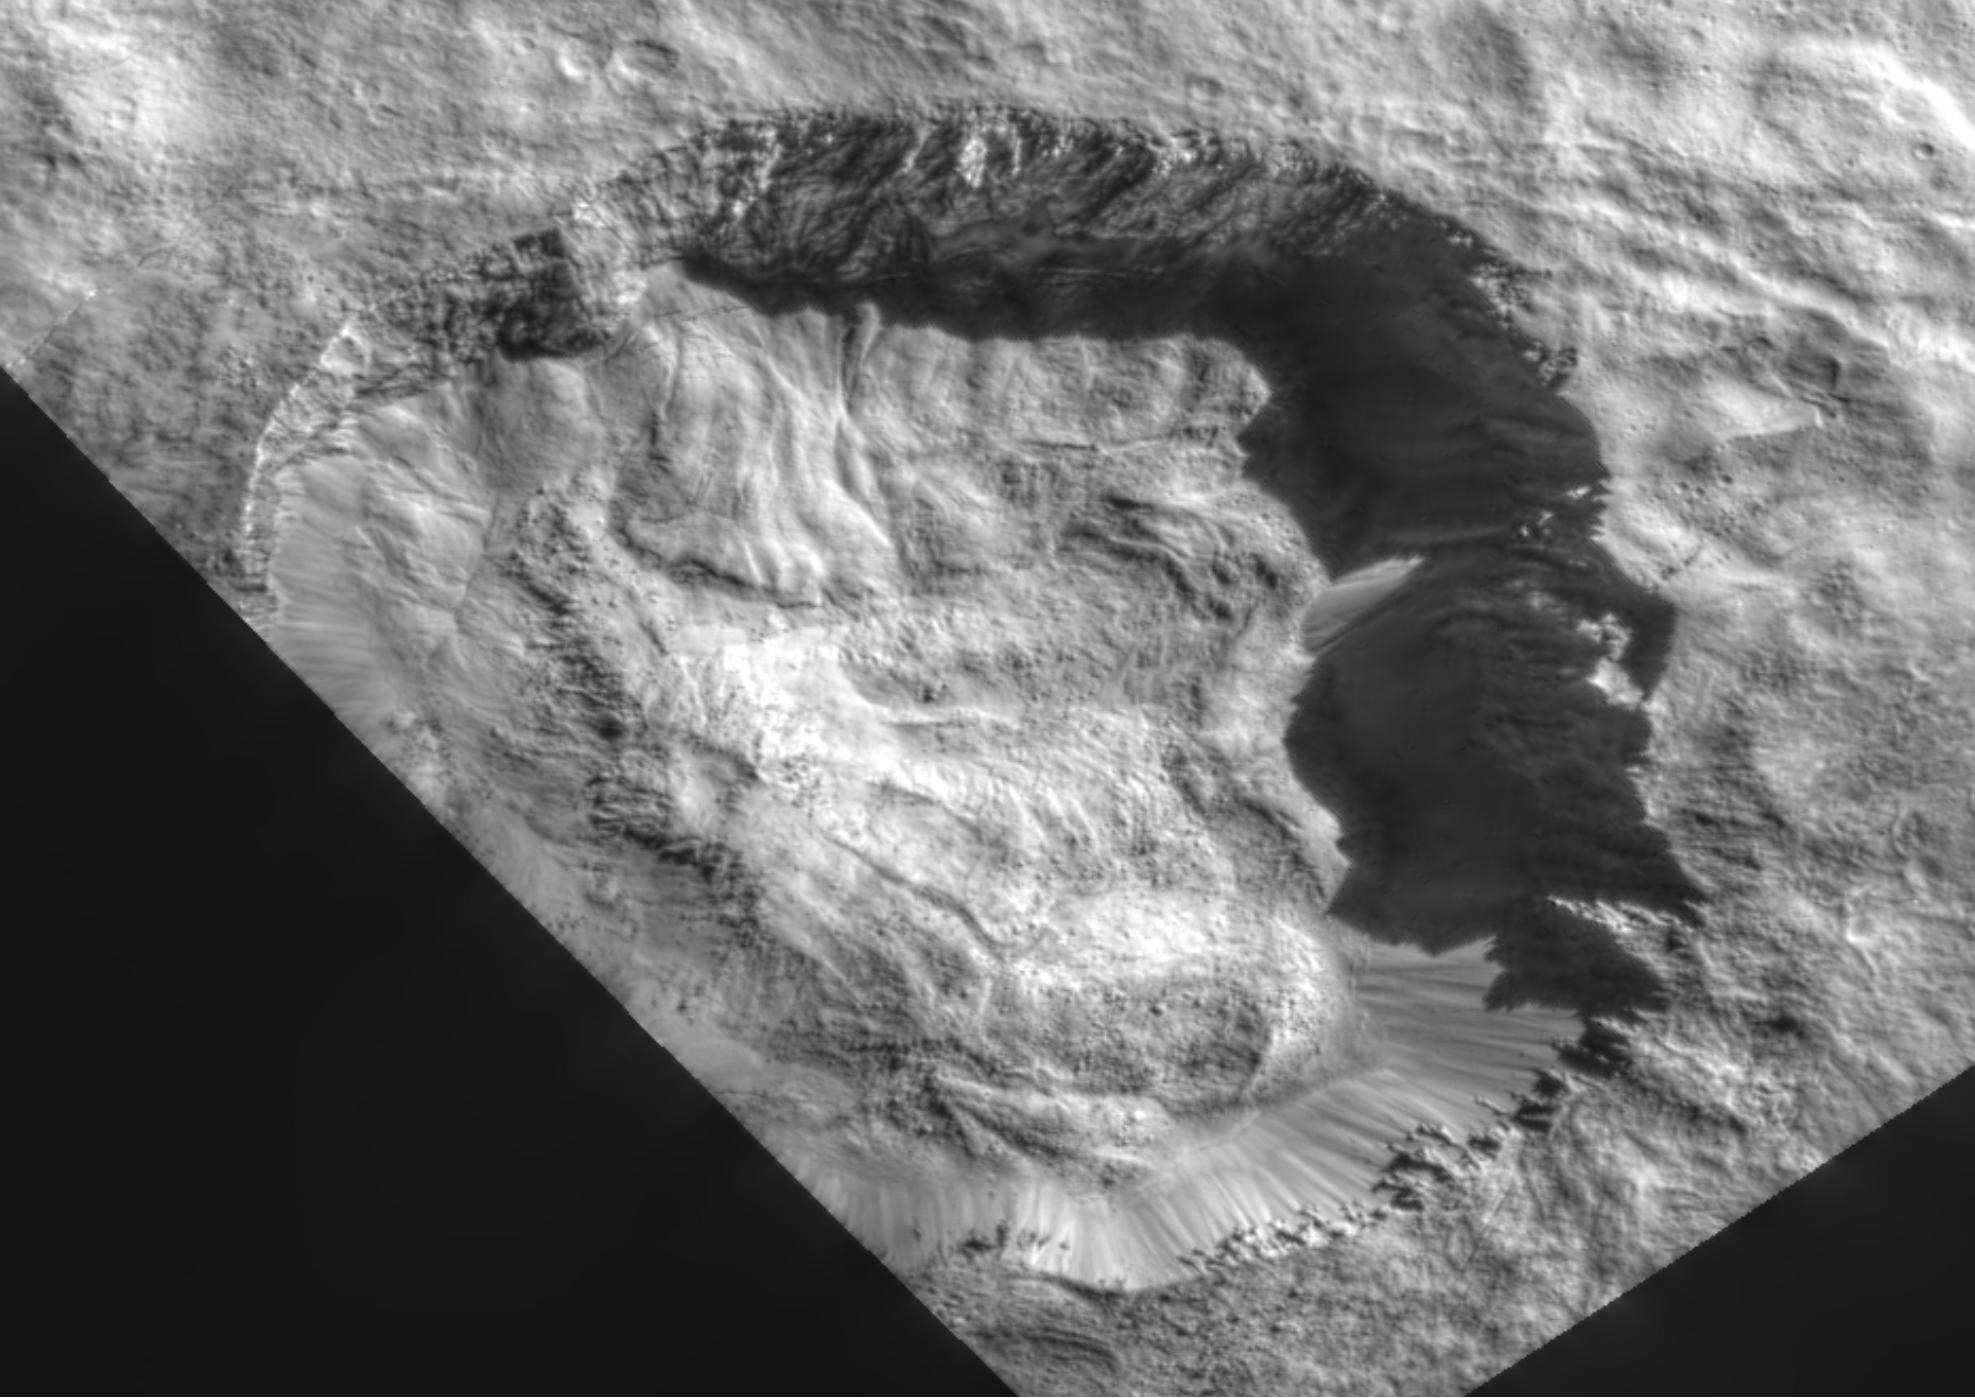 Detailed view of large impact crater on Ceres